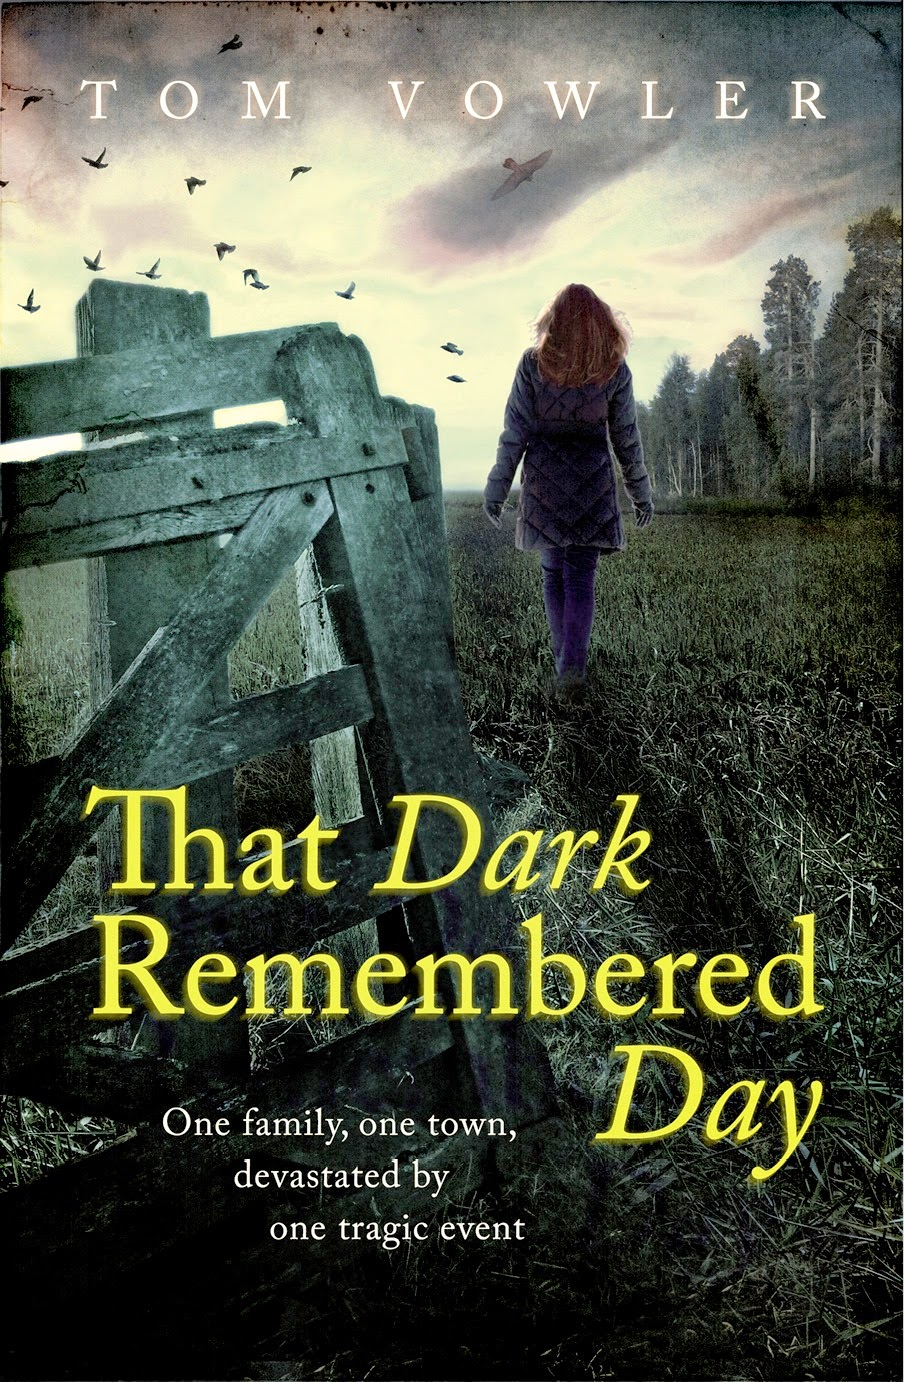 http://www.amazon.co.uk/That-Dark-Remembered-Day-Vowler/dp/0755392248/ref=tmm_pap_title_0?ie=UTF8&qid=1399235686&sr=1-1